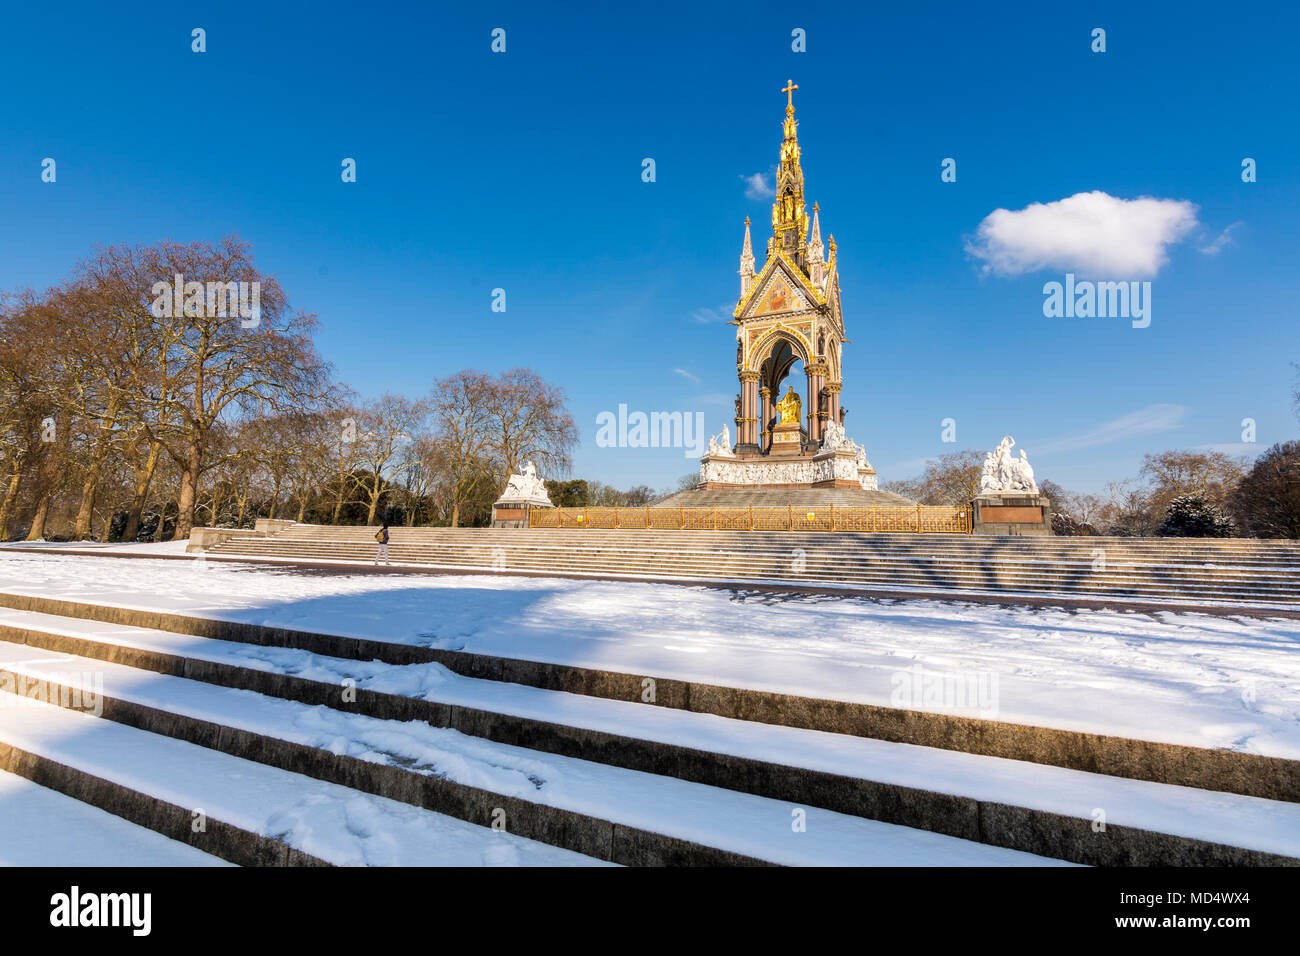 London, UK - February 2, 2018: The Royal Albert Memorial in Hyde Park covered in snow - Stock Image